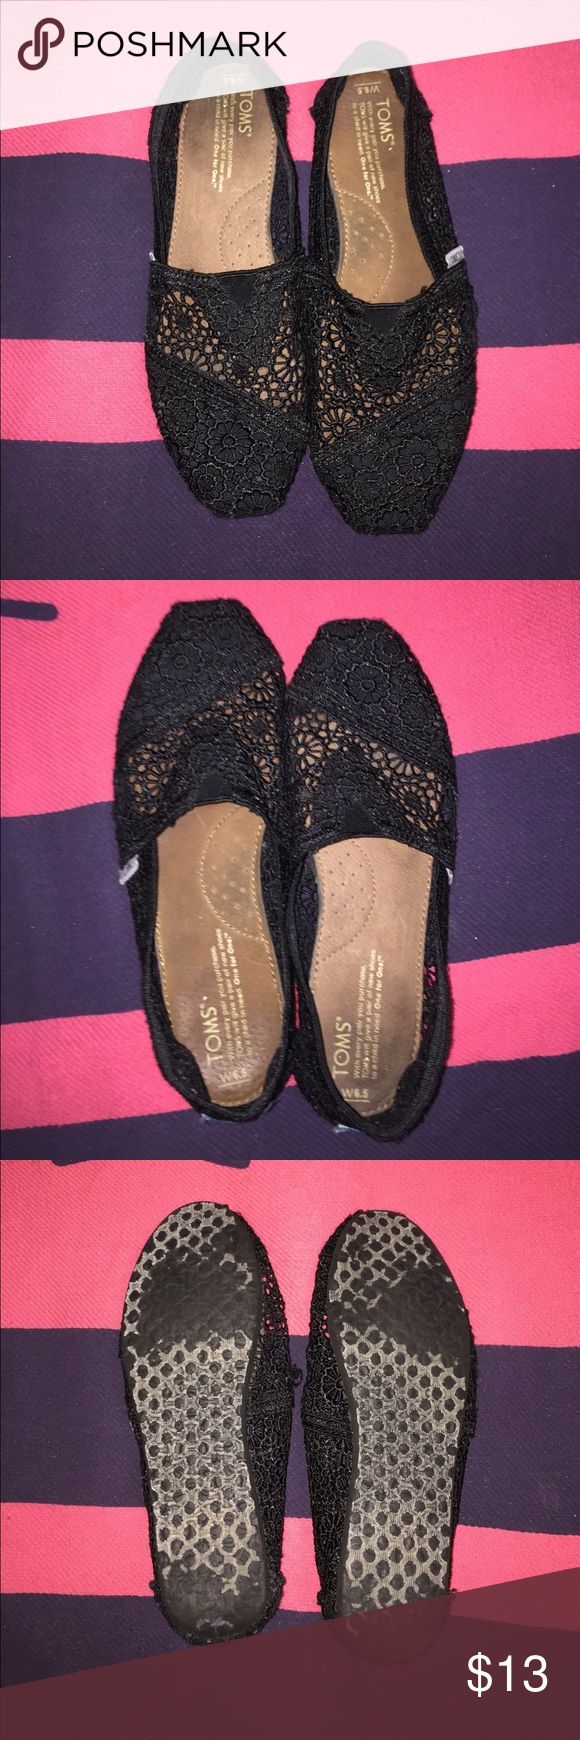 Black Lace Toms in good condition Toms Shoes Flats & Loafers